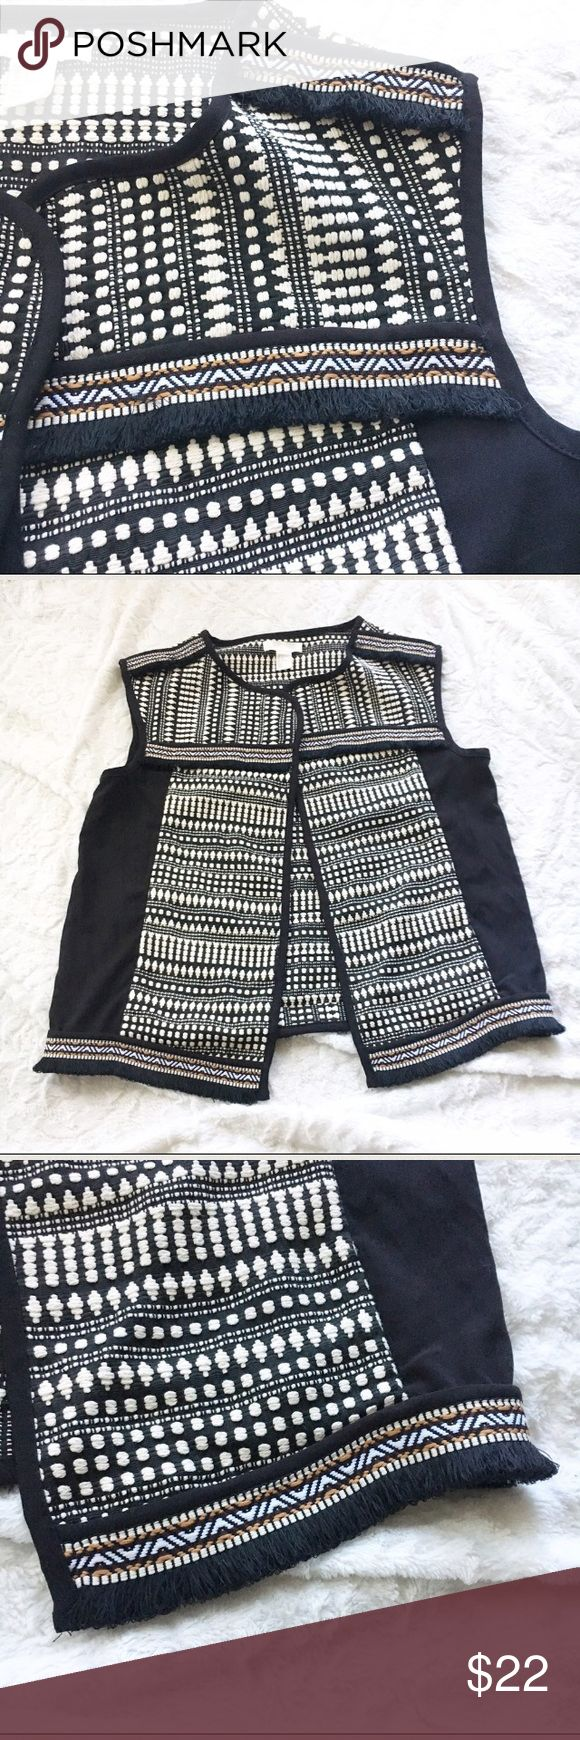 """H&M Tribal Print Vest Doesn't have any wear. Missing the belt to it. Chest 19"""" Length 23.5"""" 76% cotton 24% polyester. H&M Jackets & Coats Vests"""